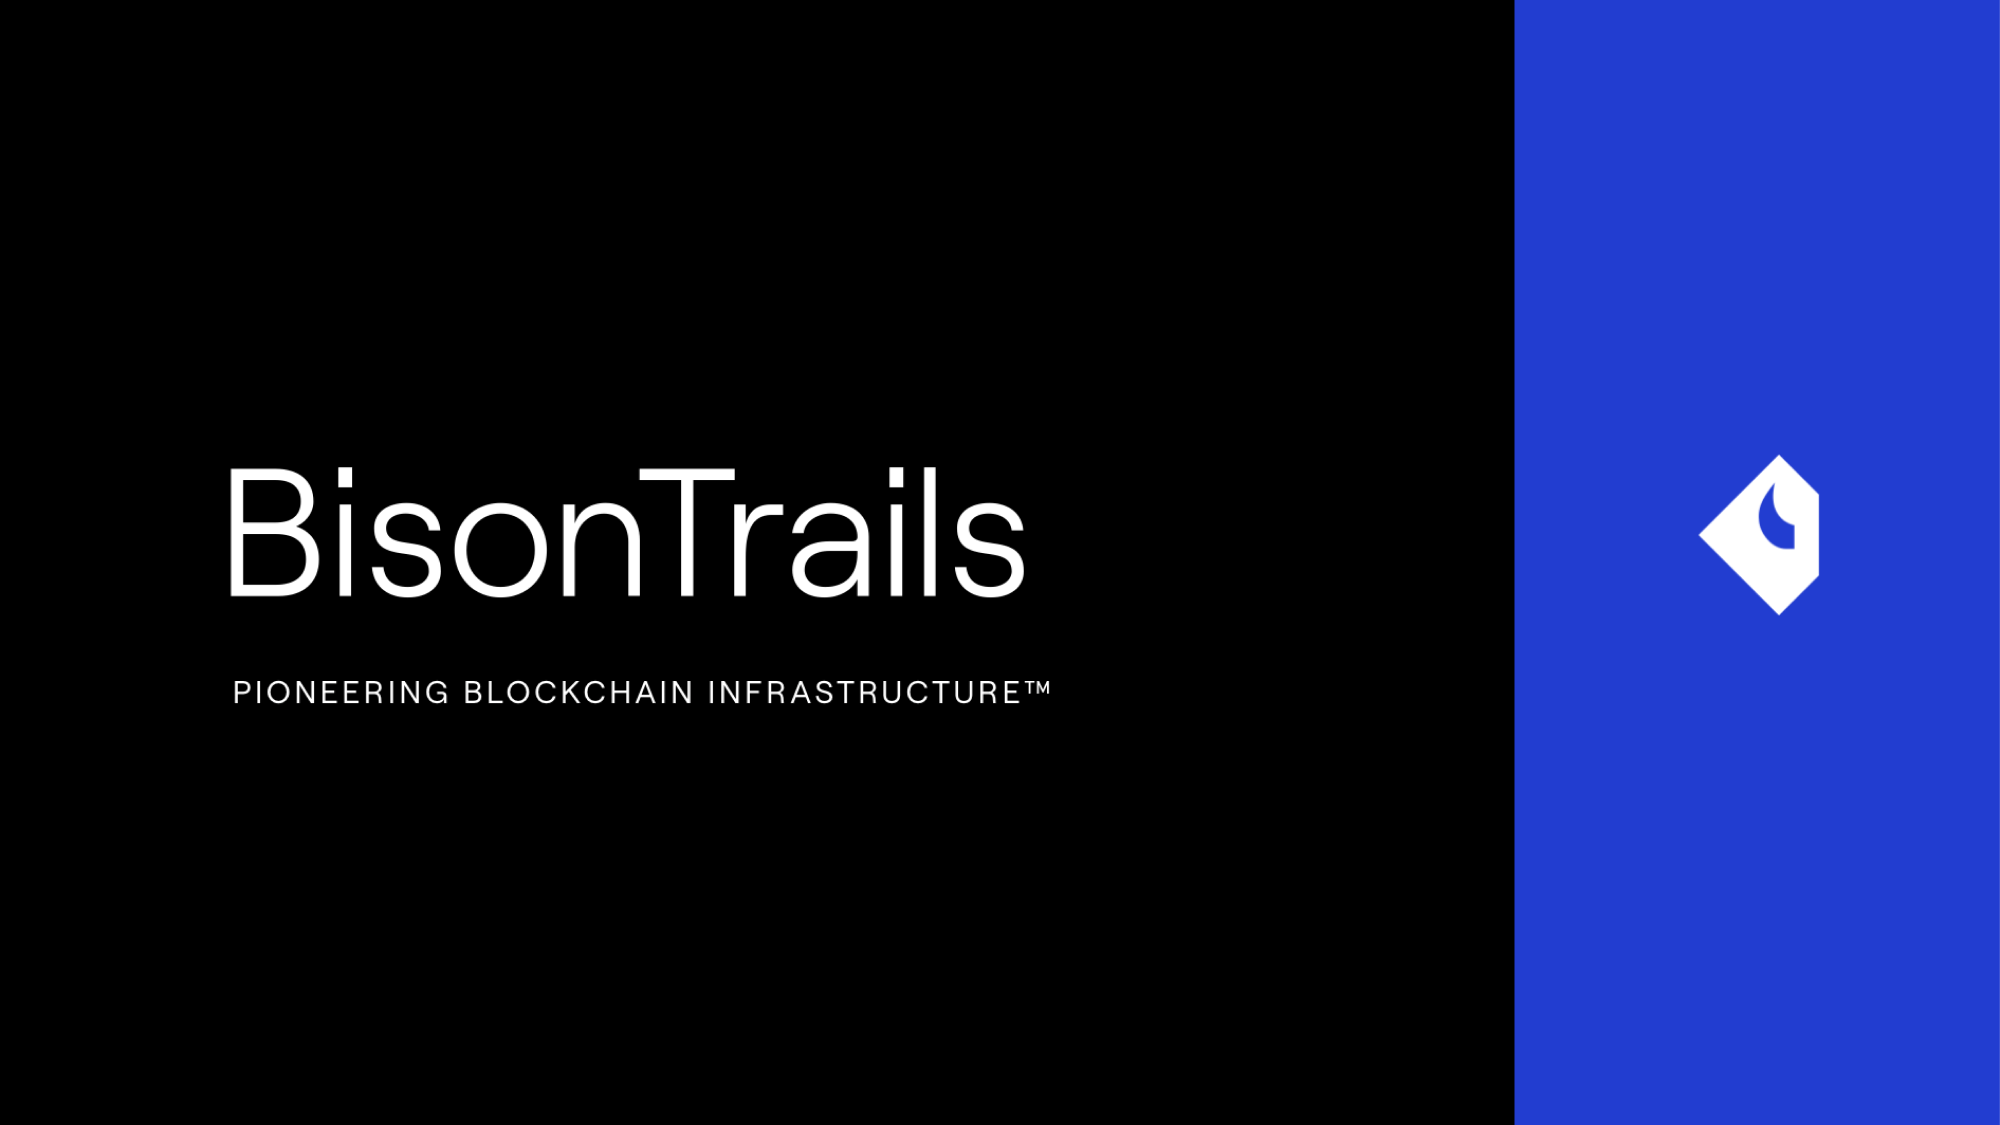 Bison Trails secures $25.5 Million Series A financing round led by Blockchain Capital